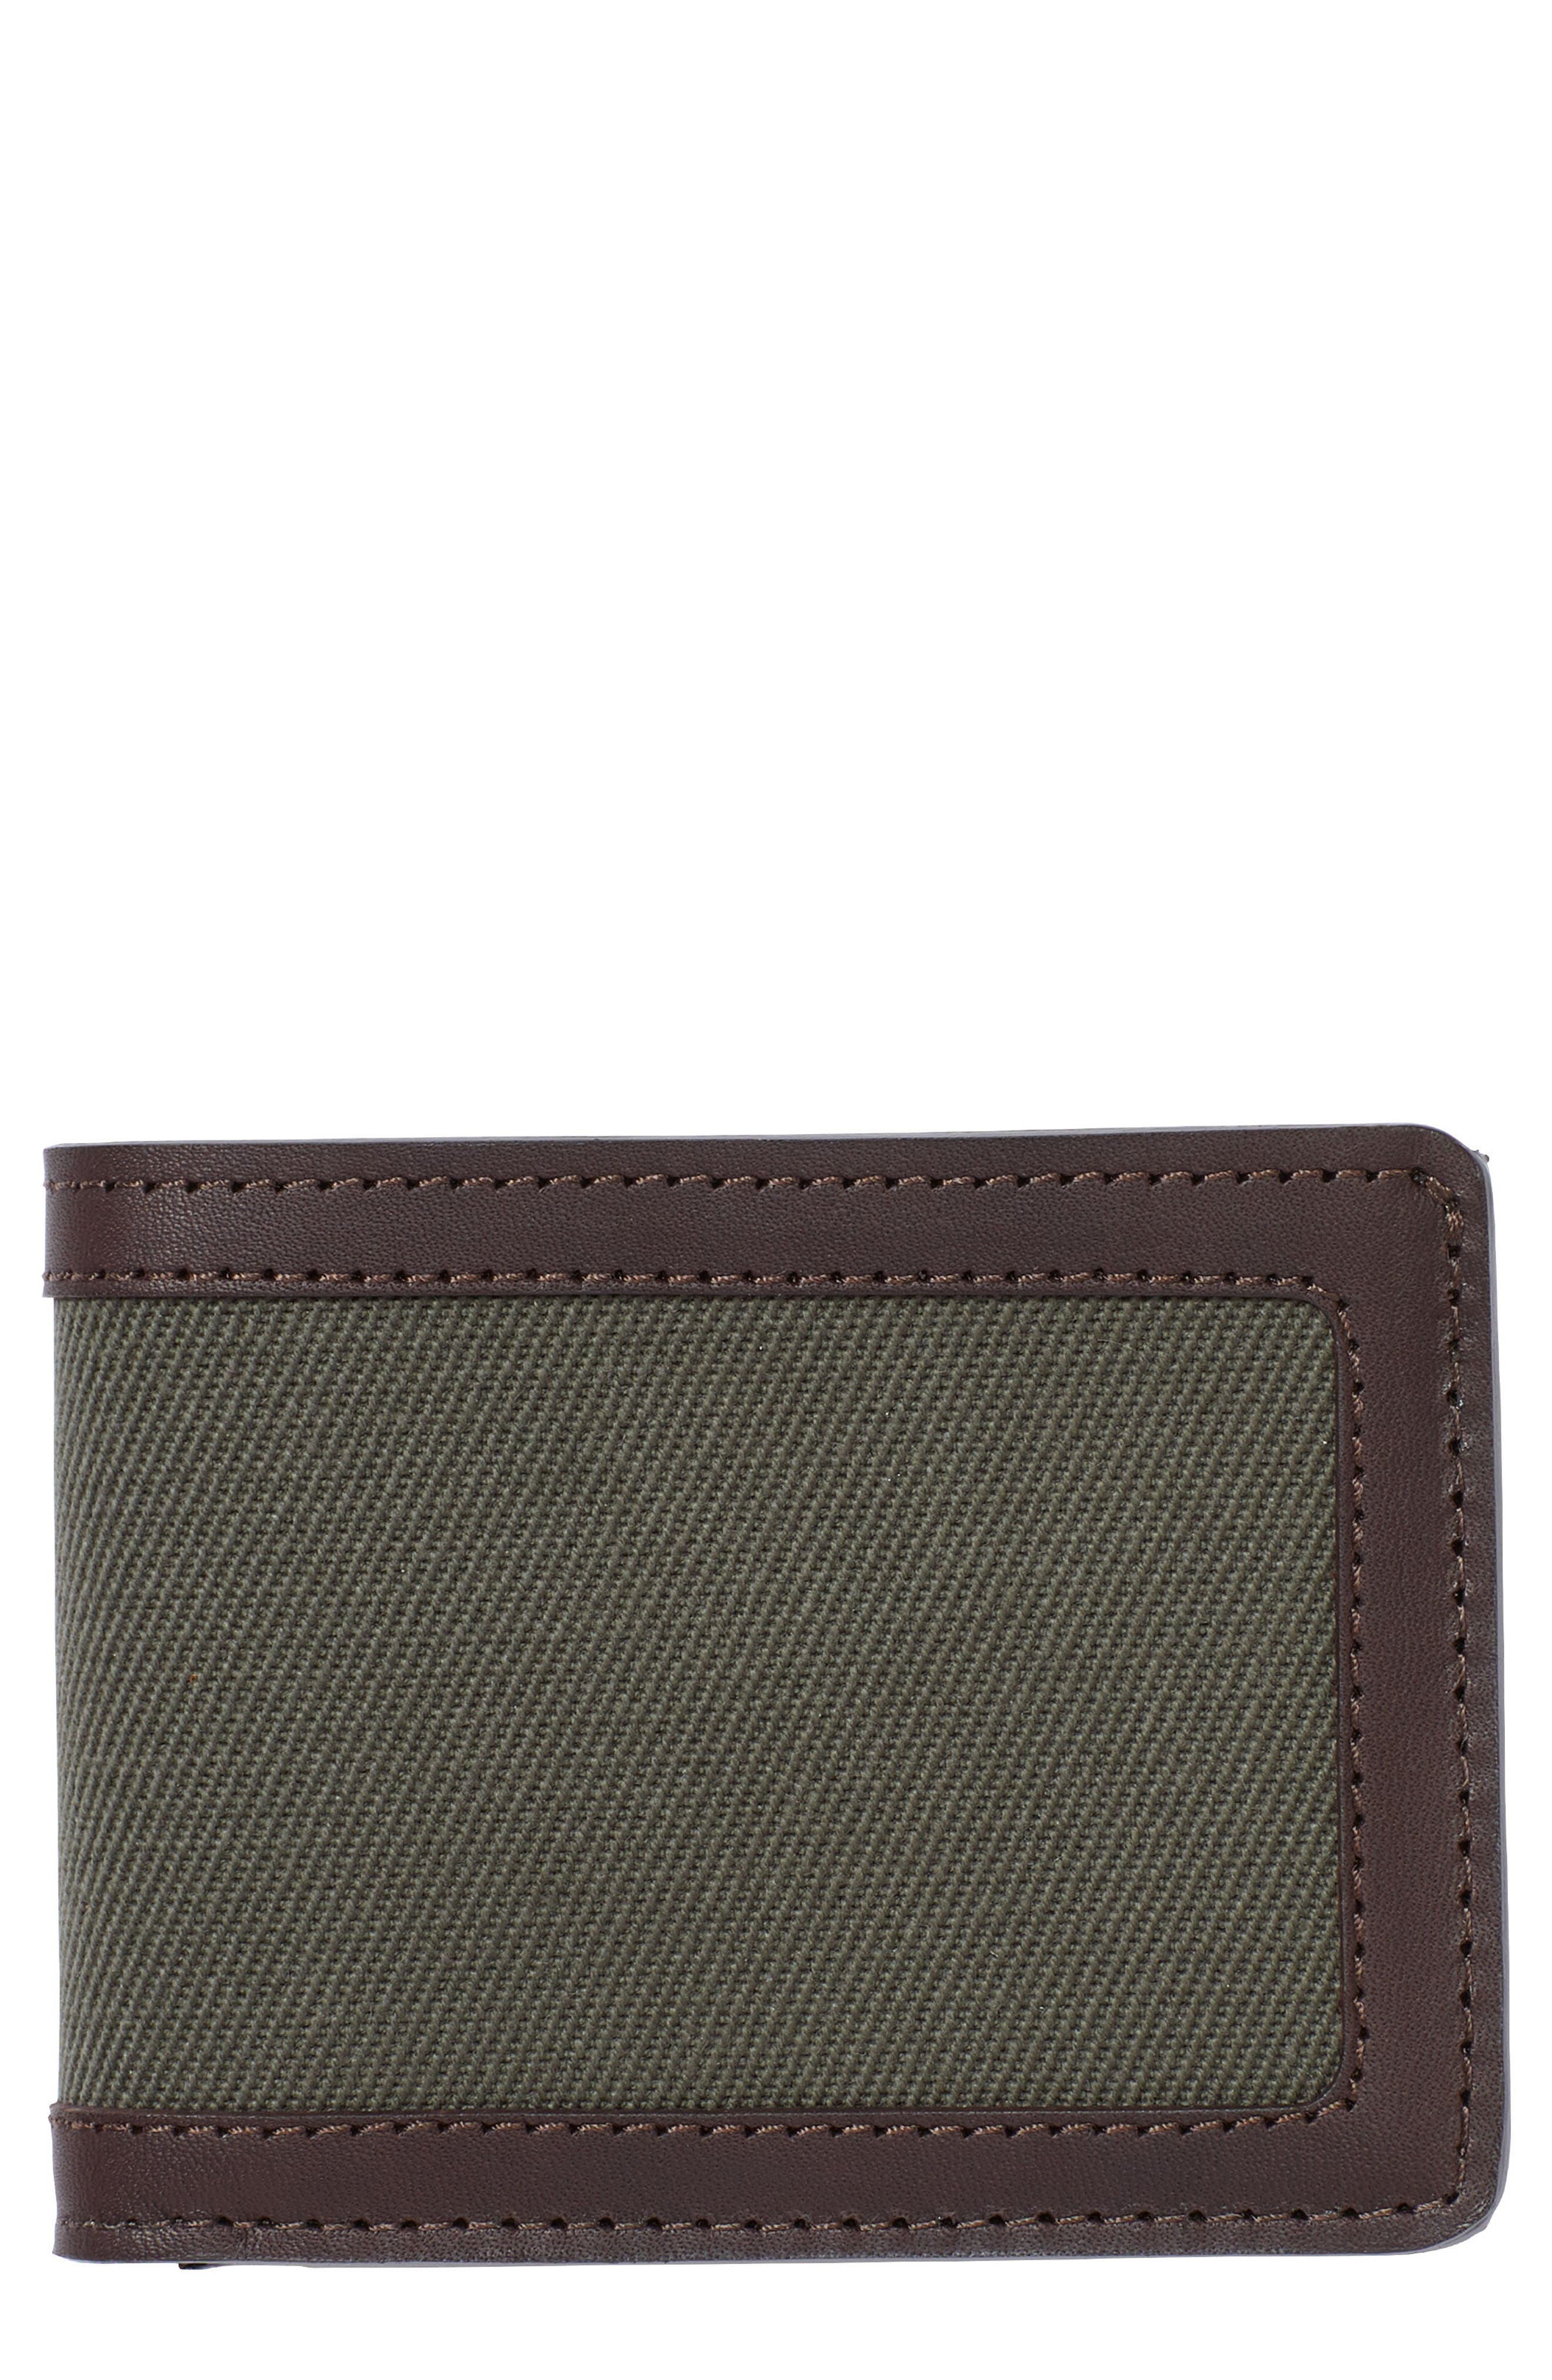 Filsone Outfitter Leather & Canvas Bifold Wallet